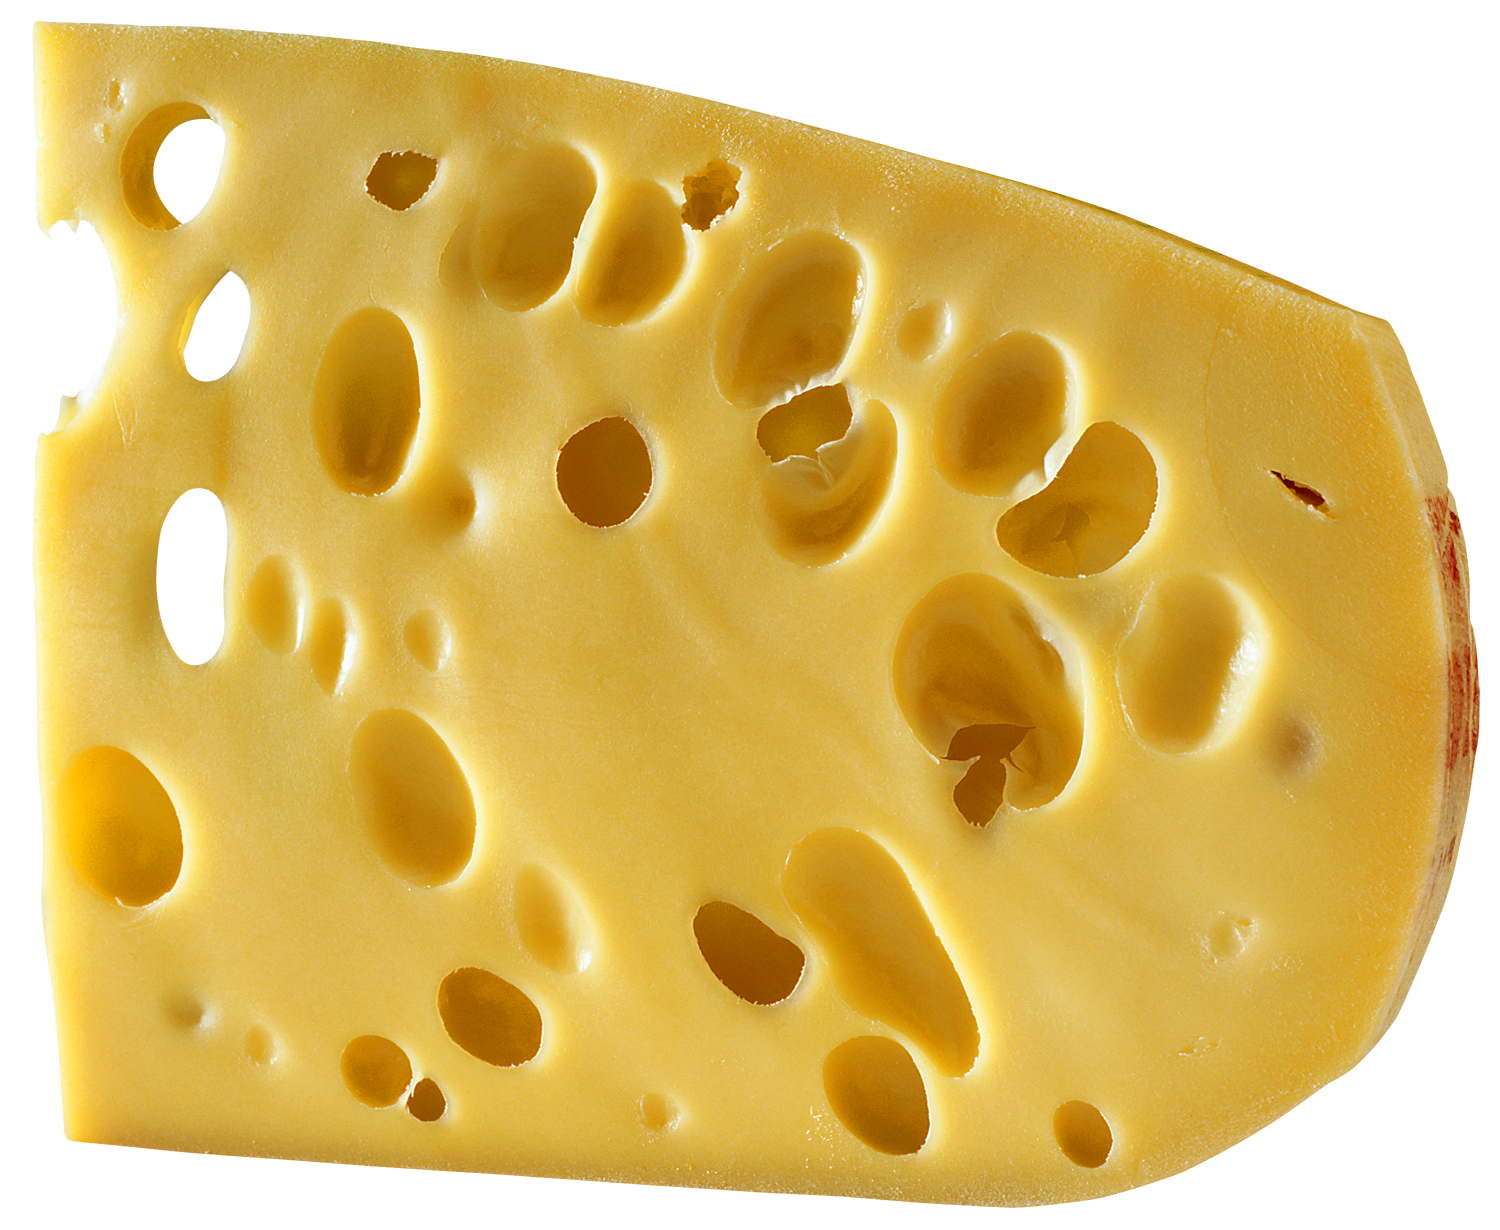 cheese_PNG1.png (1500×1230)